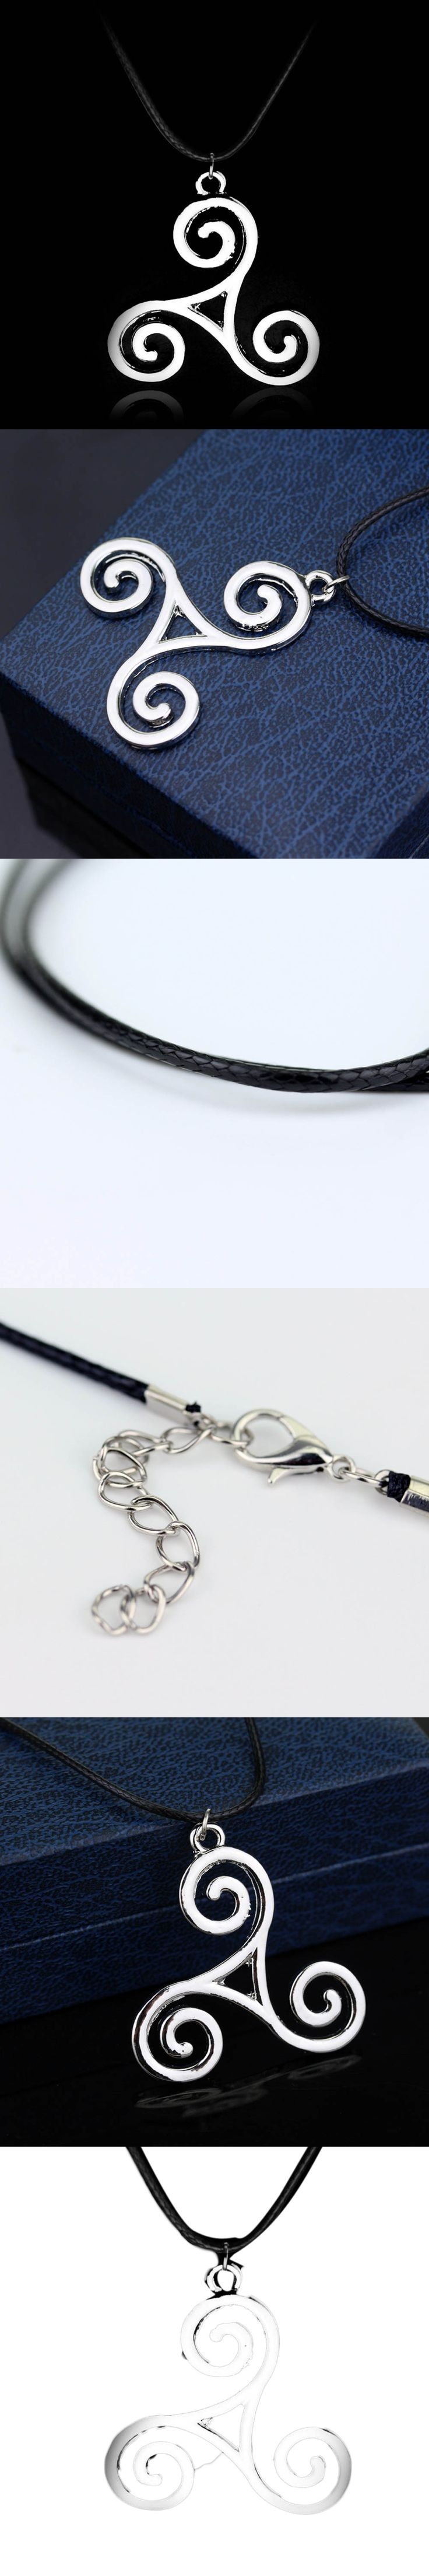 2017 New Style Teen Wolf necklace Triskele Triskelion Allison Argent Silver Color Pendant Jewelry for Men and Women Wholesale